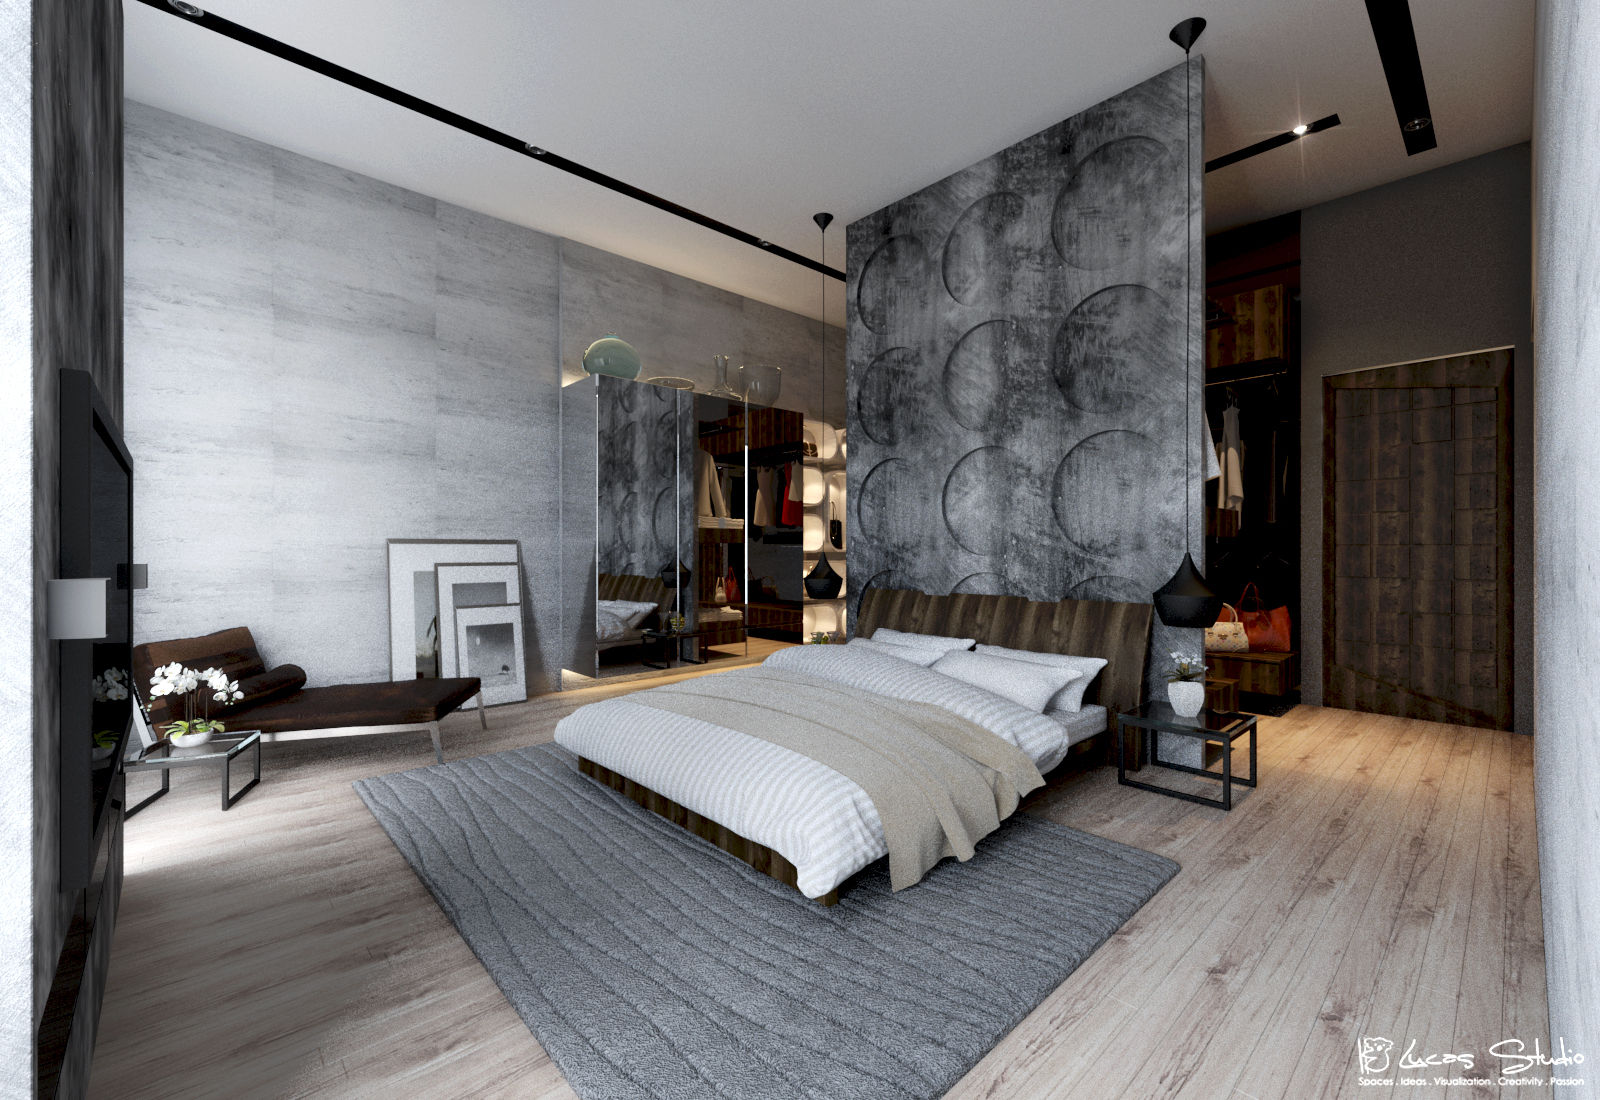 10 Beautiful Examples Of Bedroom Accent Walls - D.Signers on Teenage:rfnoincytf8= Room Designs  id=83845